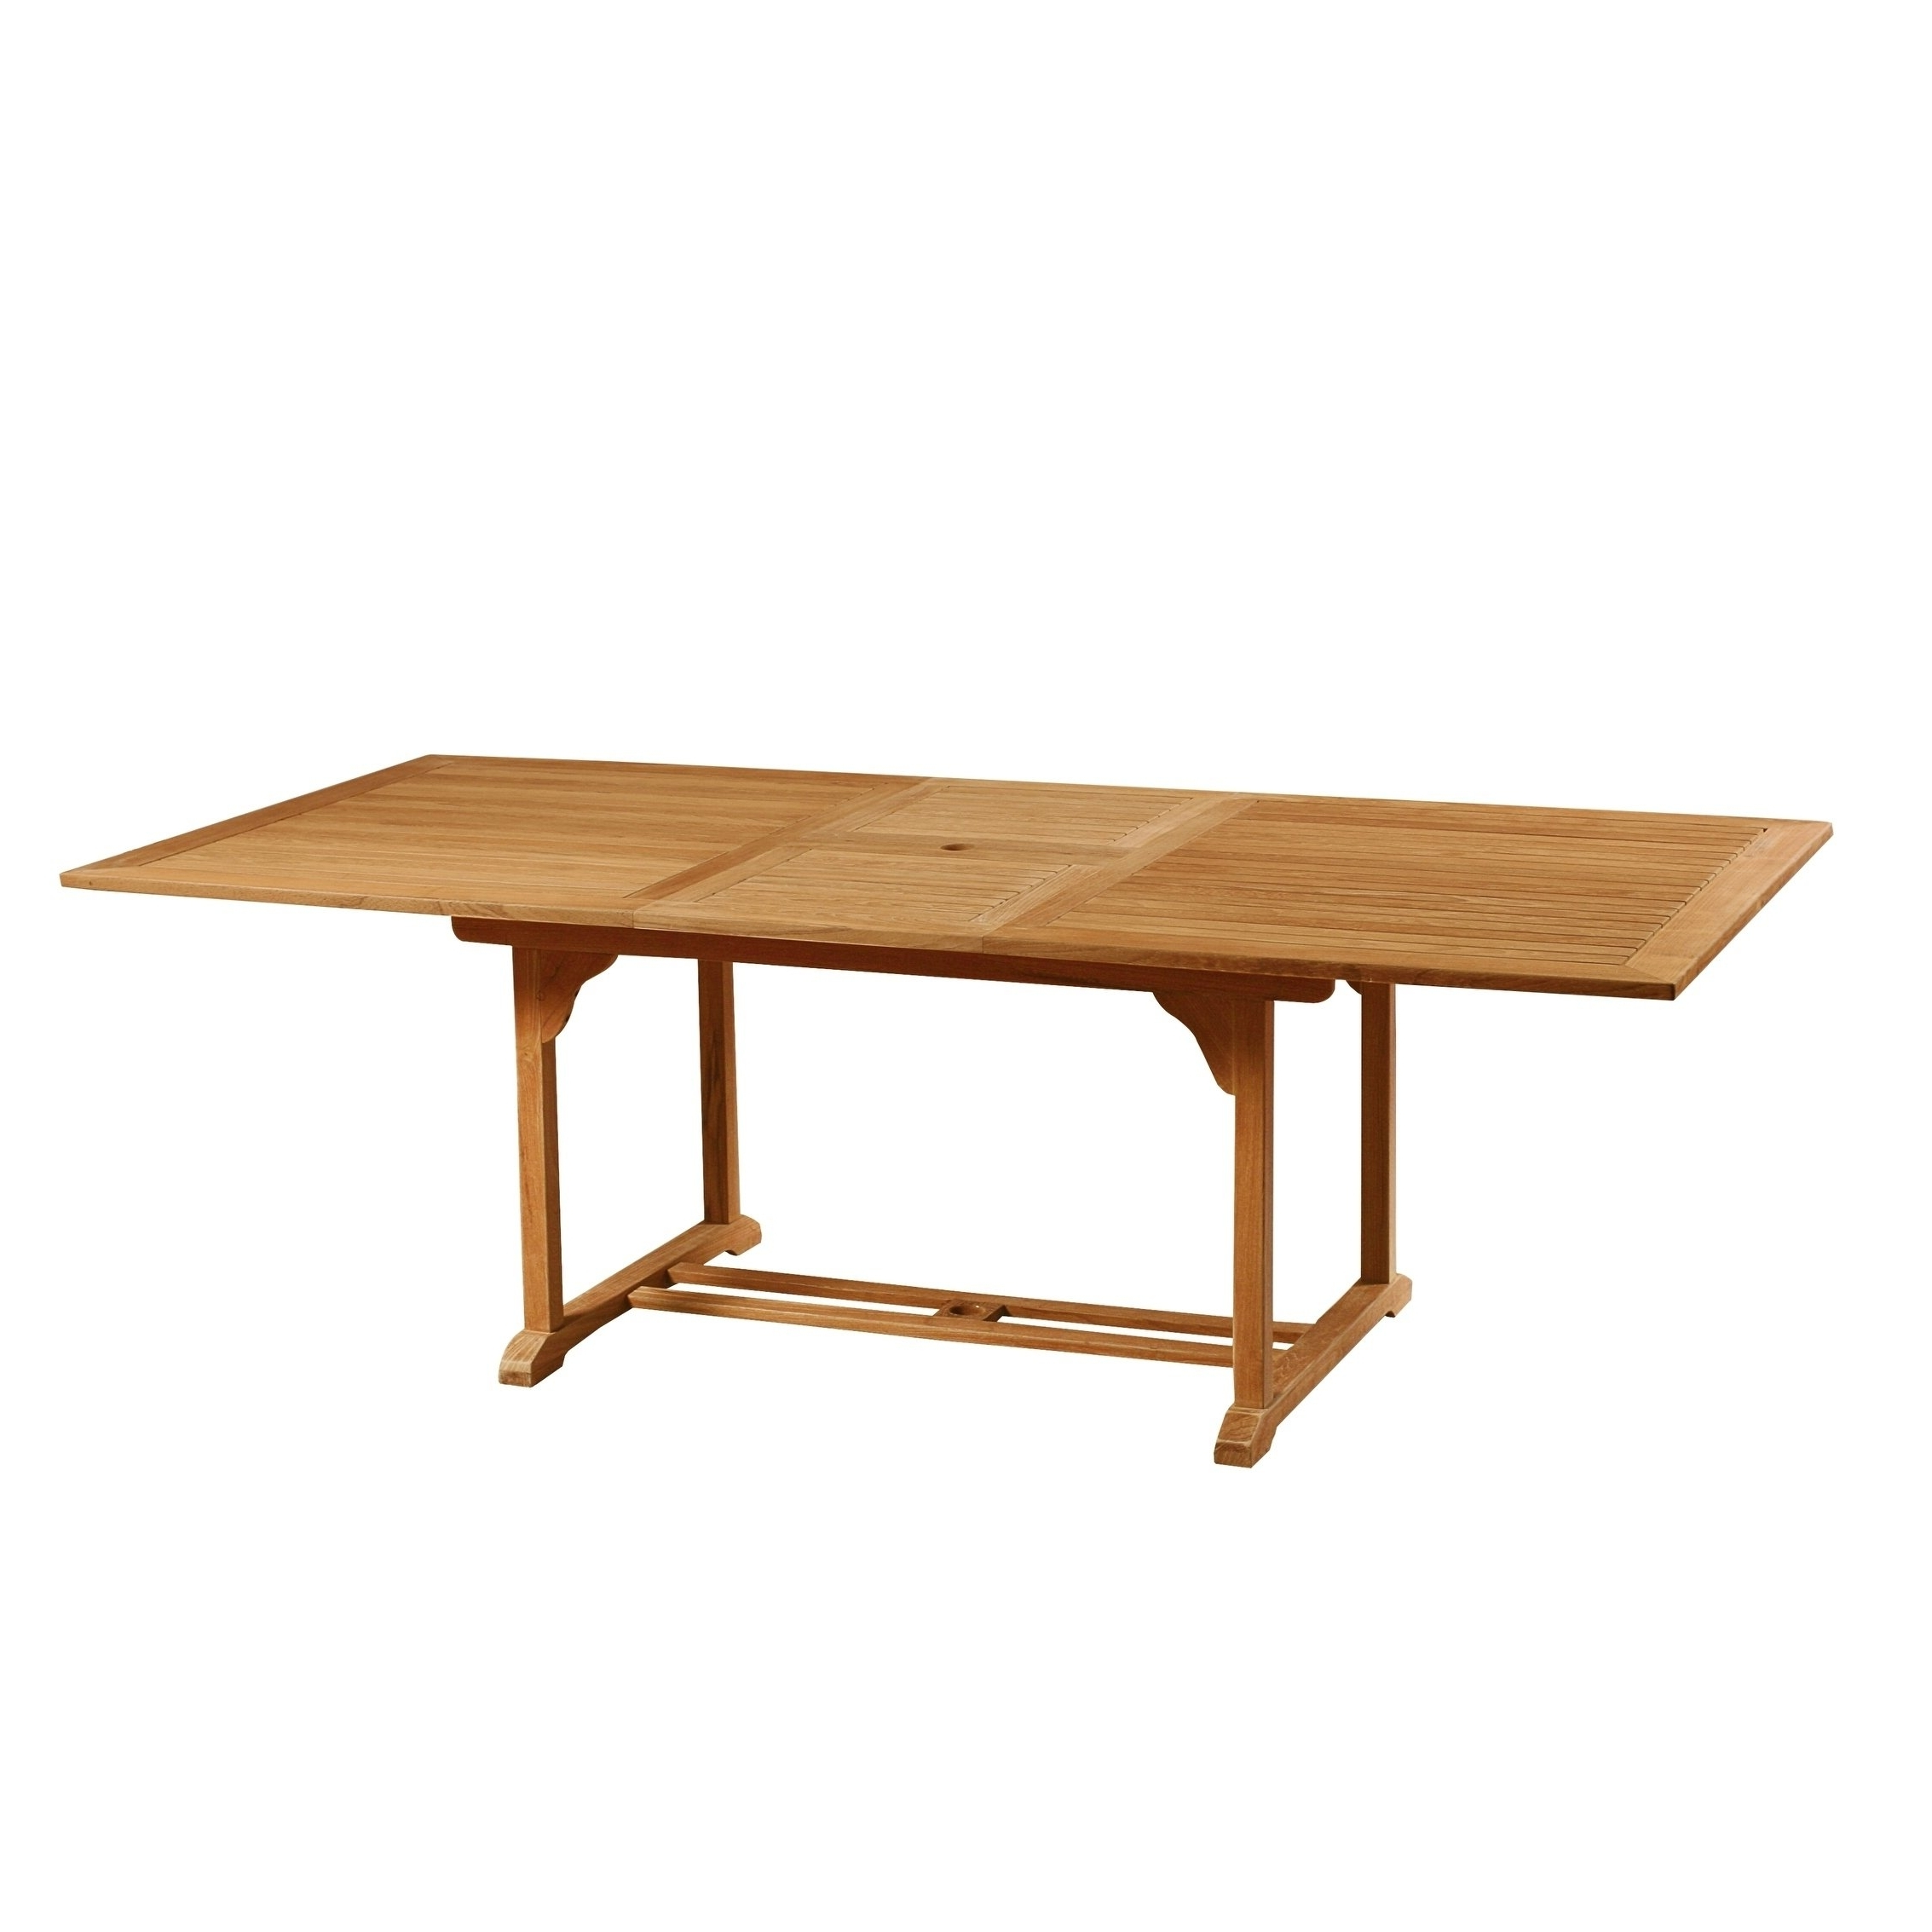 Extending Outdoor Dining Tables Within Trendy Shop Dalton Outdoor Teak Extending Dining Table – Free Shipping (View 7 of 25)